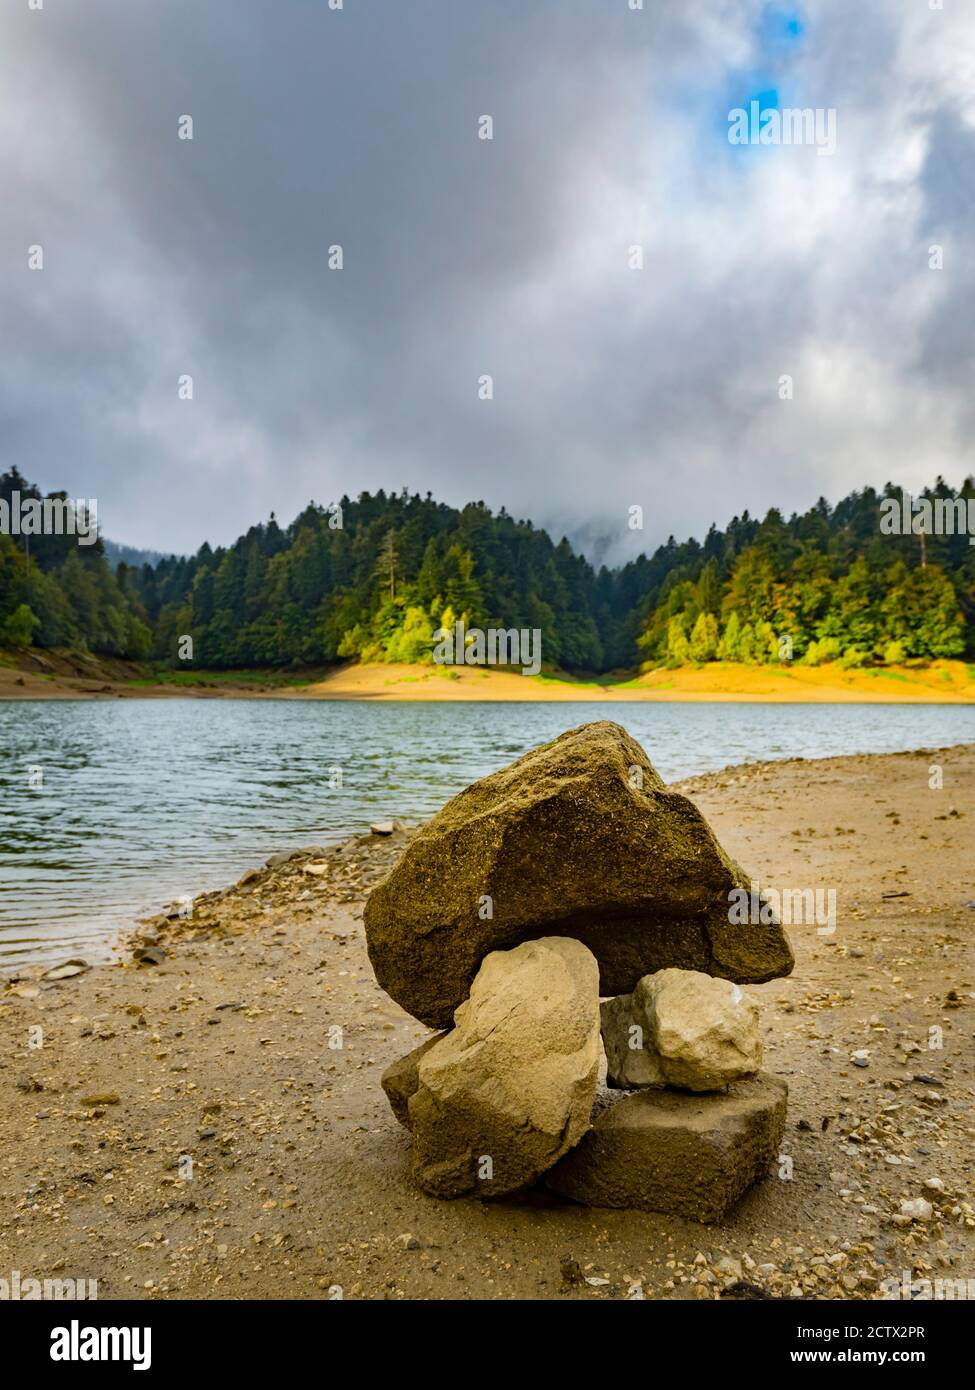 Pilet rocks on ex Louisiana road normally under lake water level near Lokvarsko Lokve lake and Mrzla vodica in Croatia Europe Stock Photo